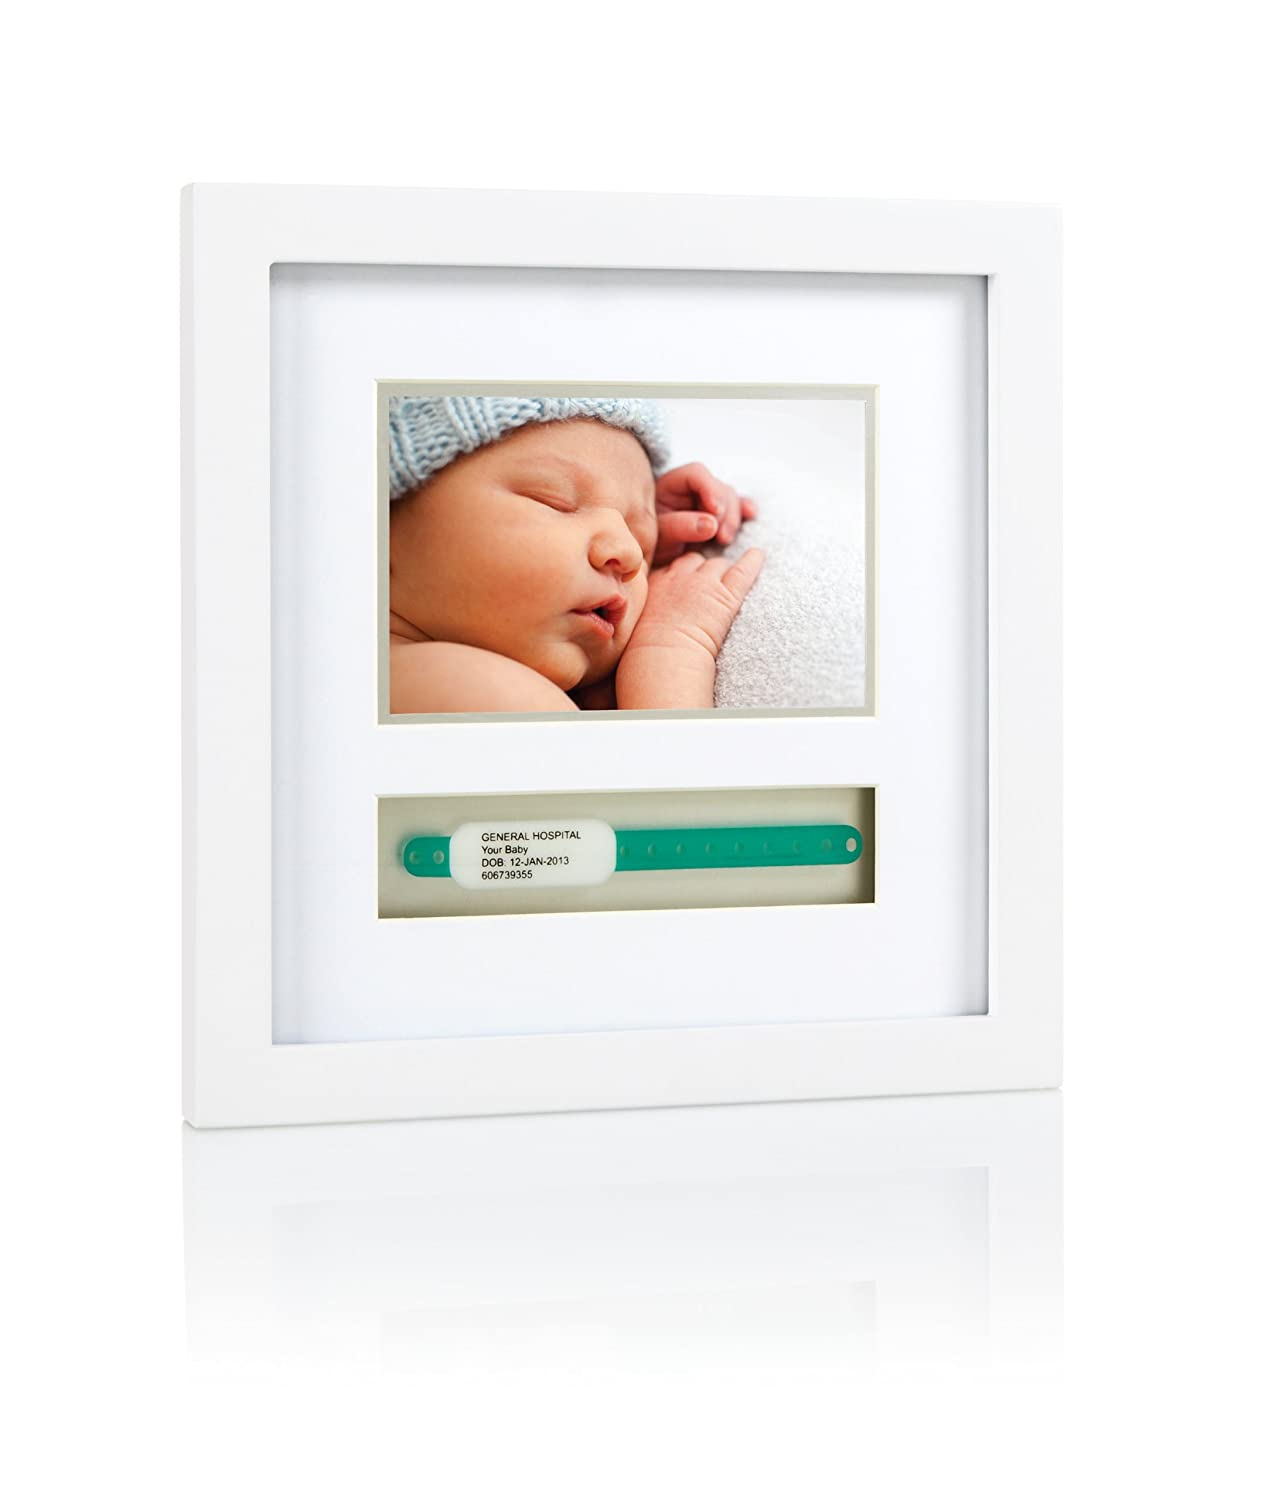 Pearhead Baby Hospital ID Bracelet and Photo Keepsake Frame, White Pearhead Inc. P63012